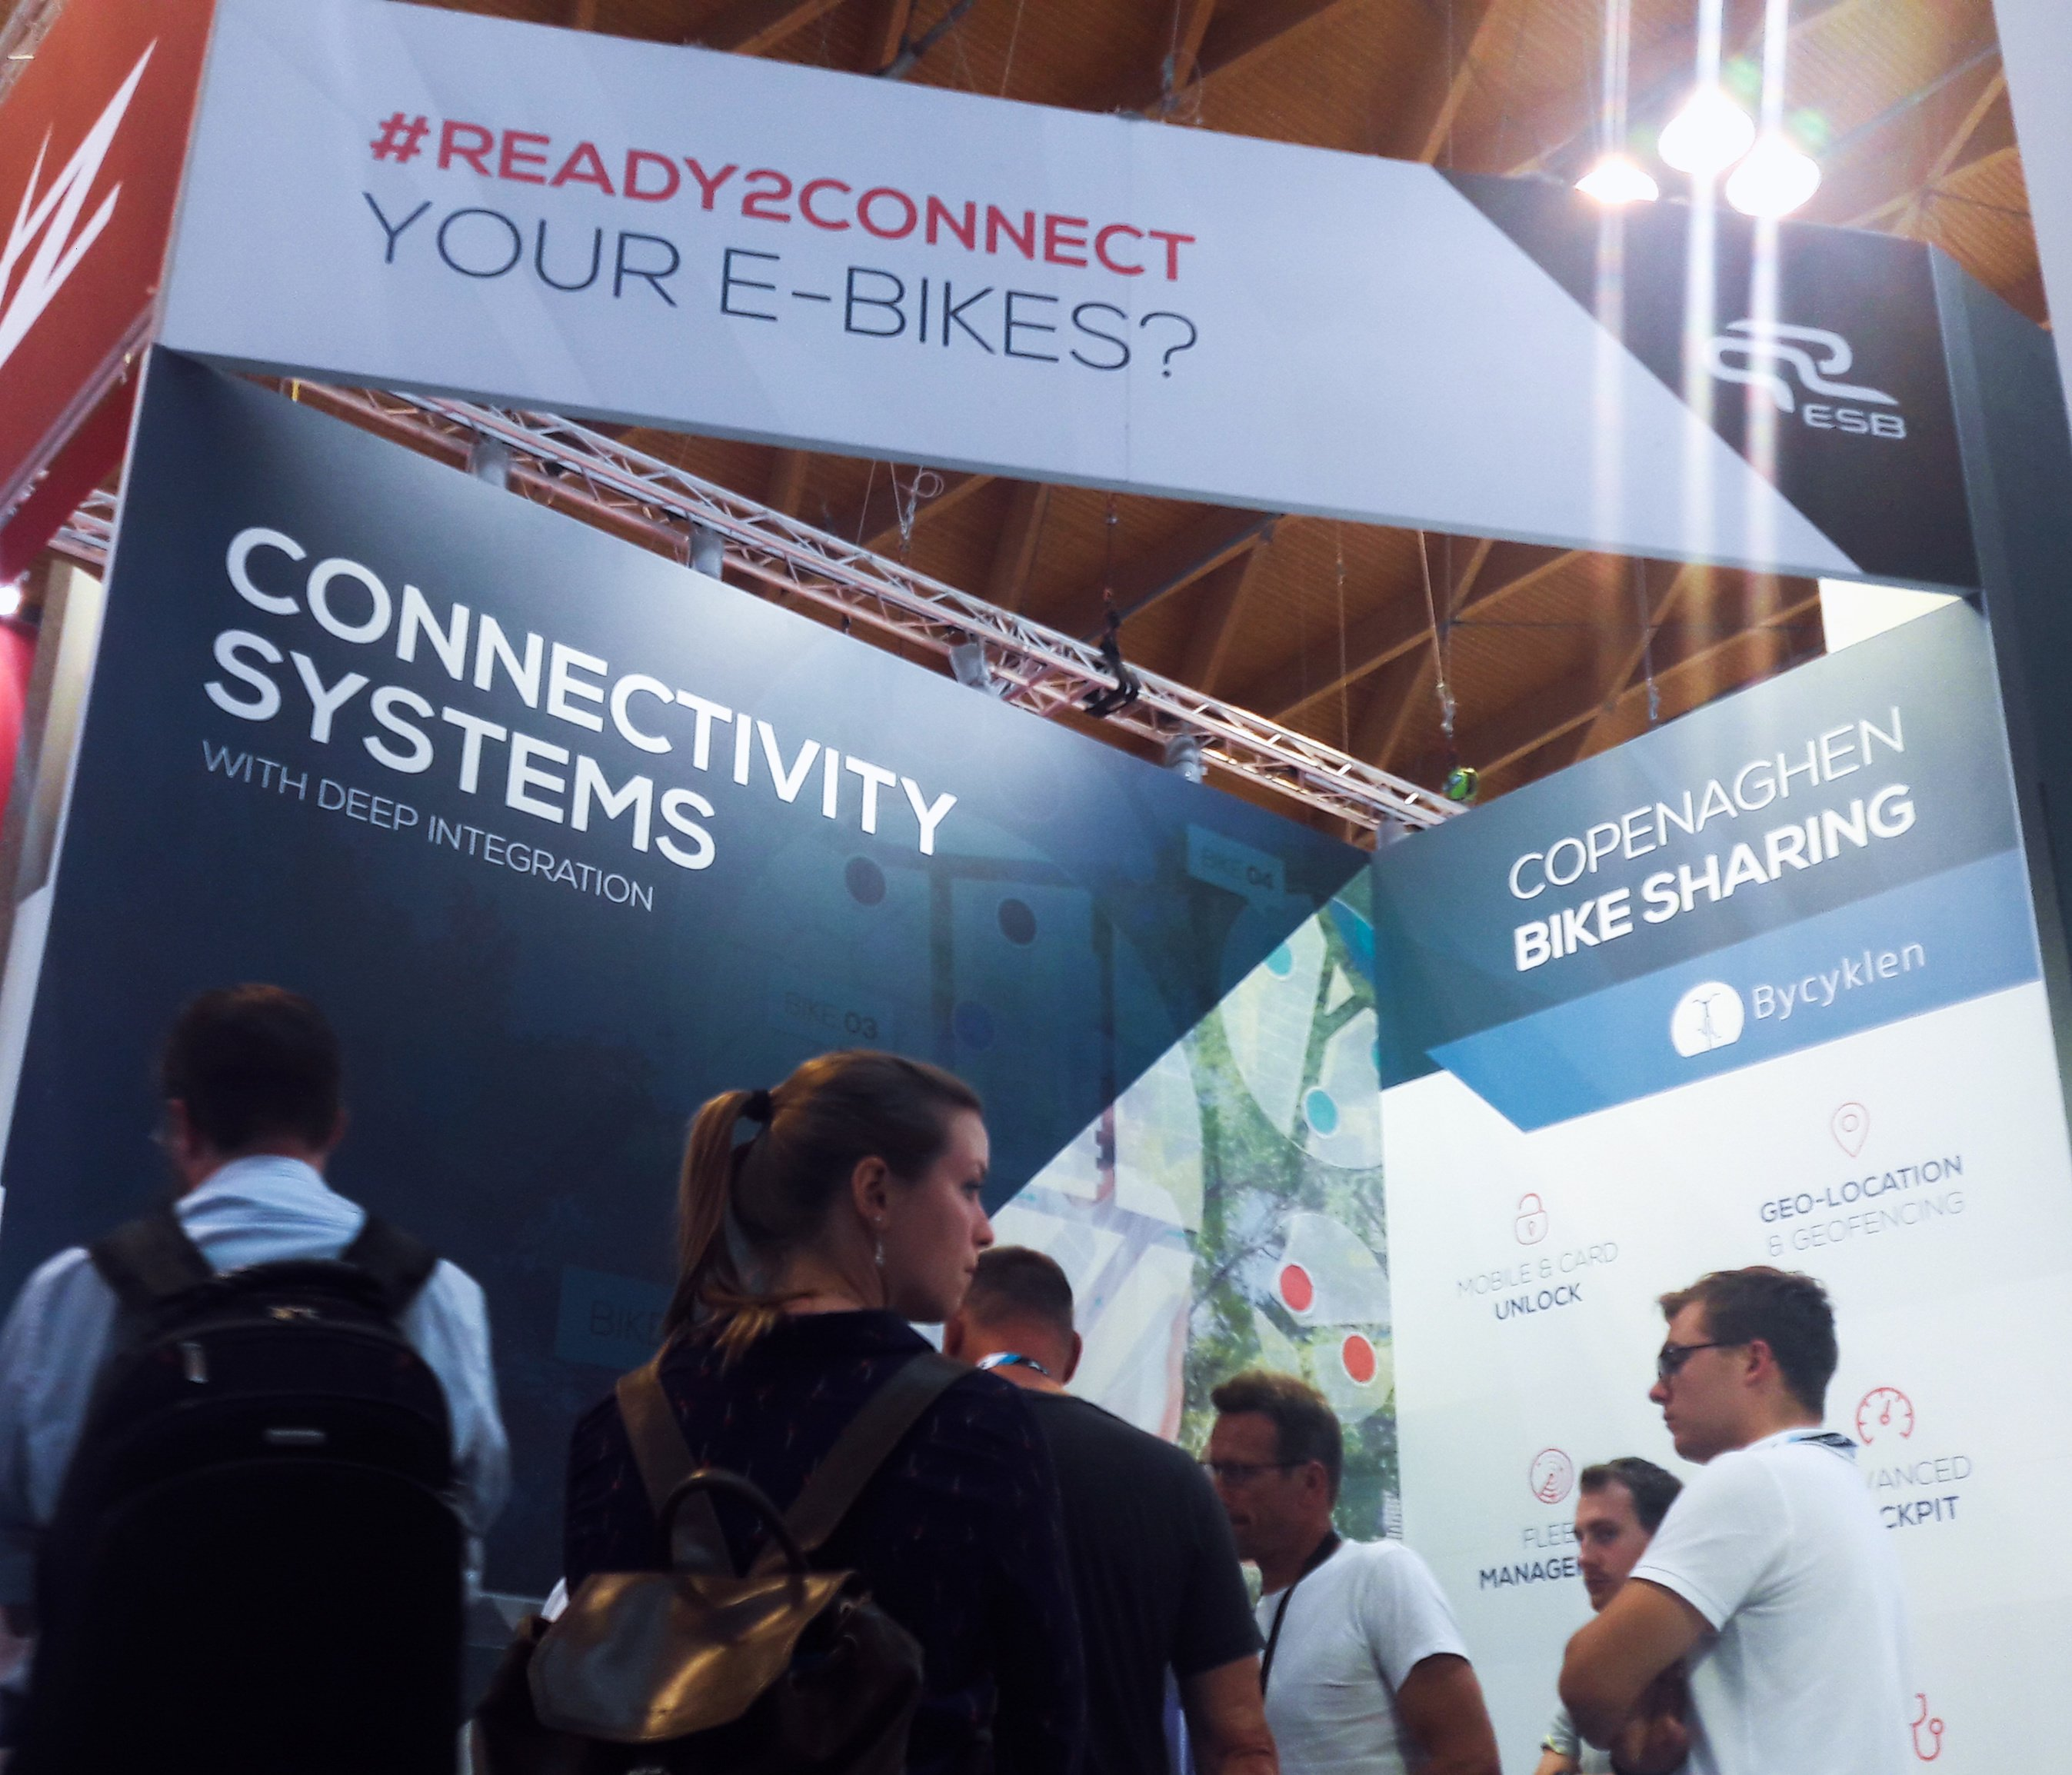 ESB_Eurobike_2018_SITAEL_cONENCTIVITY_System_ebikes